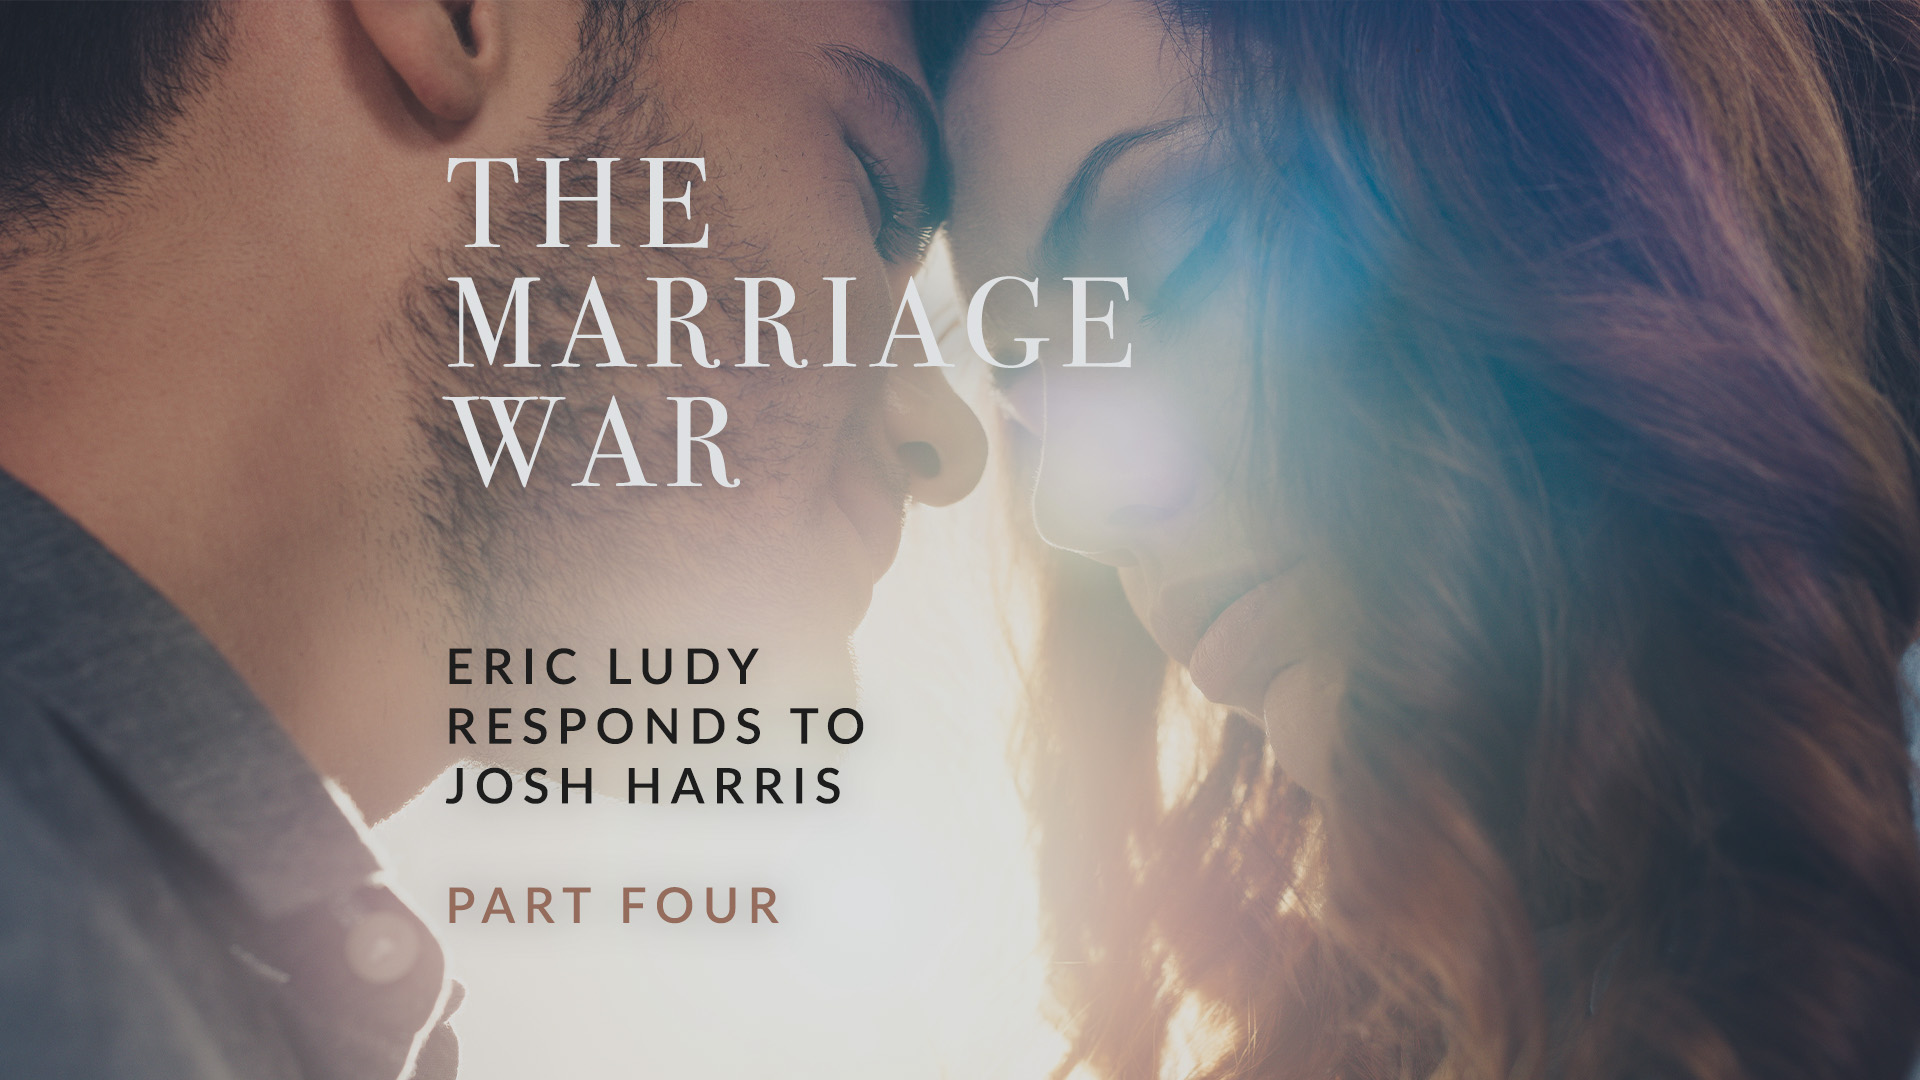 Eric Ludy believes Josh Harris' marriage was targeted